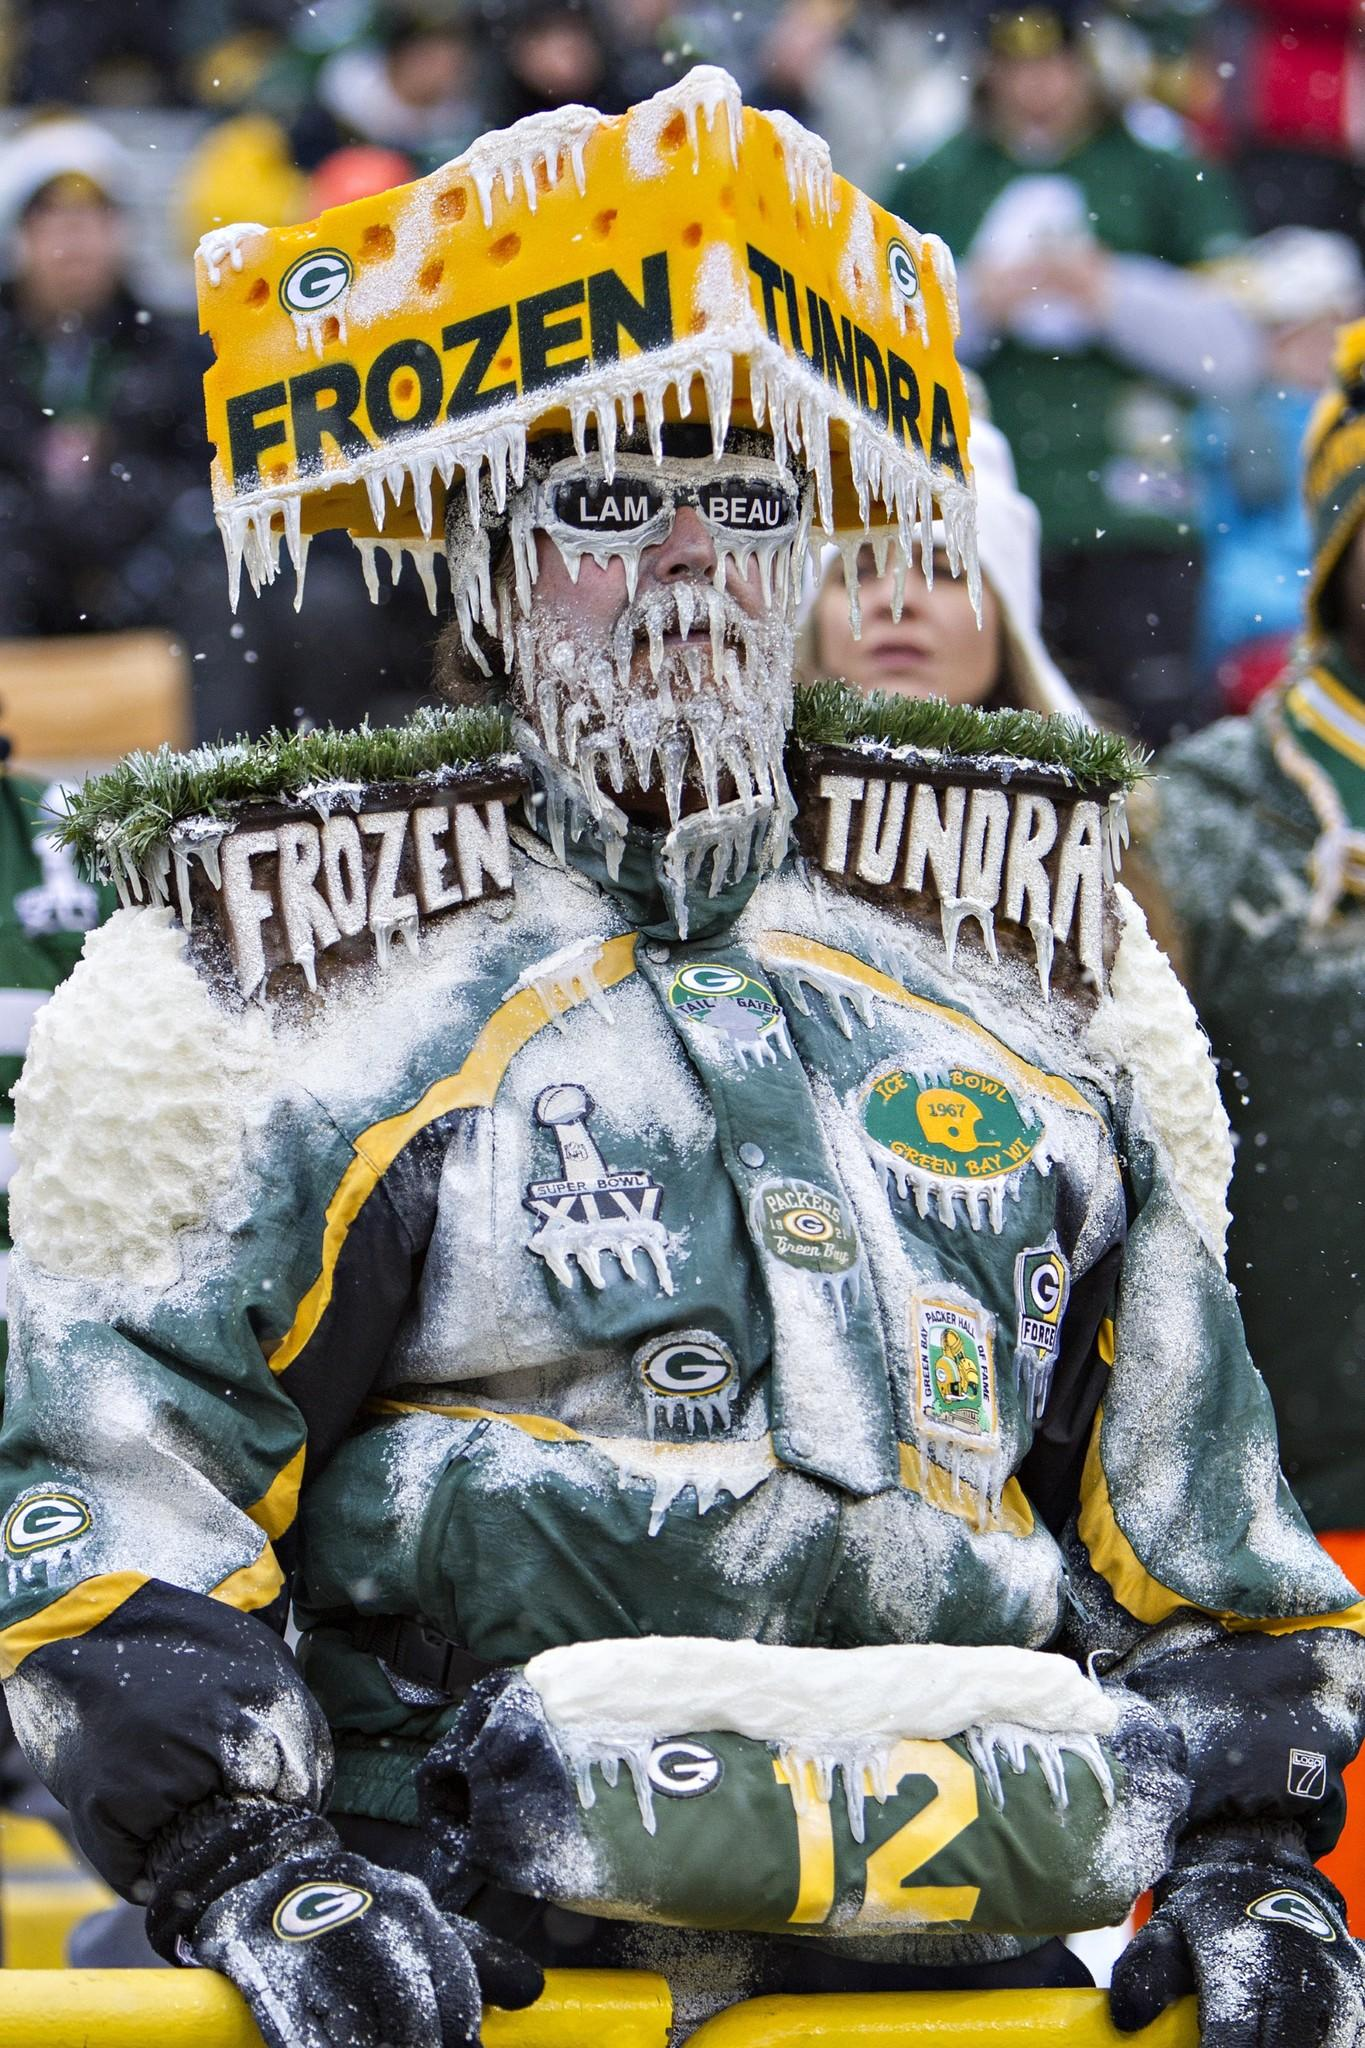 A Green Bay Packers fan during the Dec. 22 game against the Steelers.